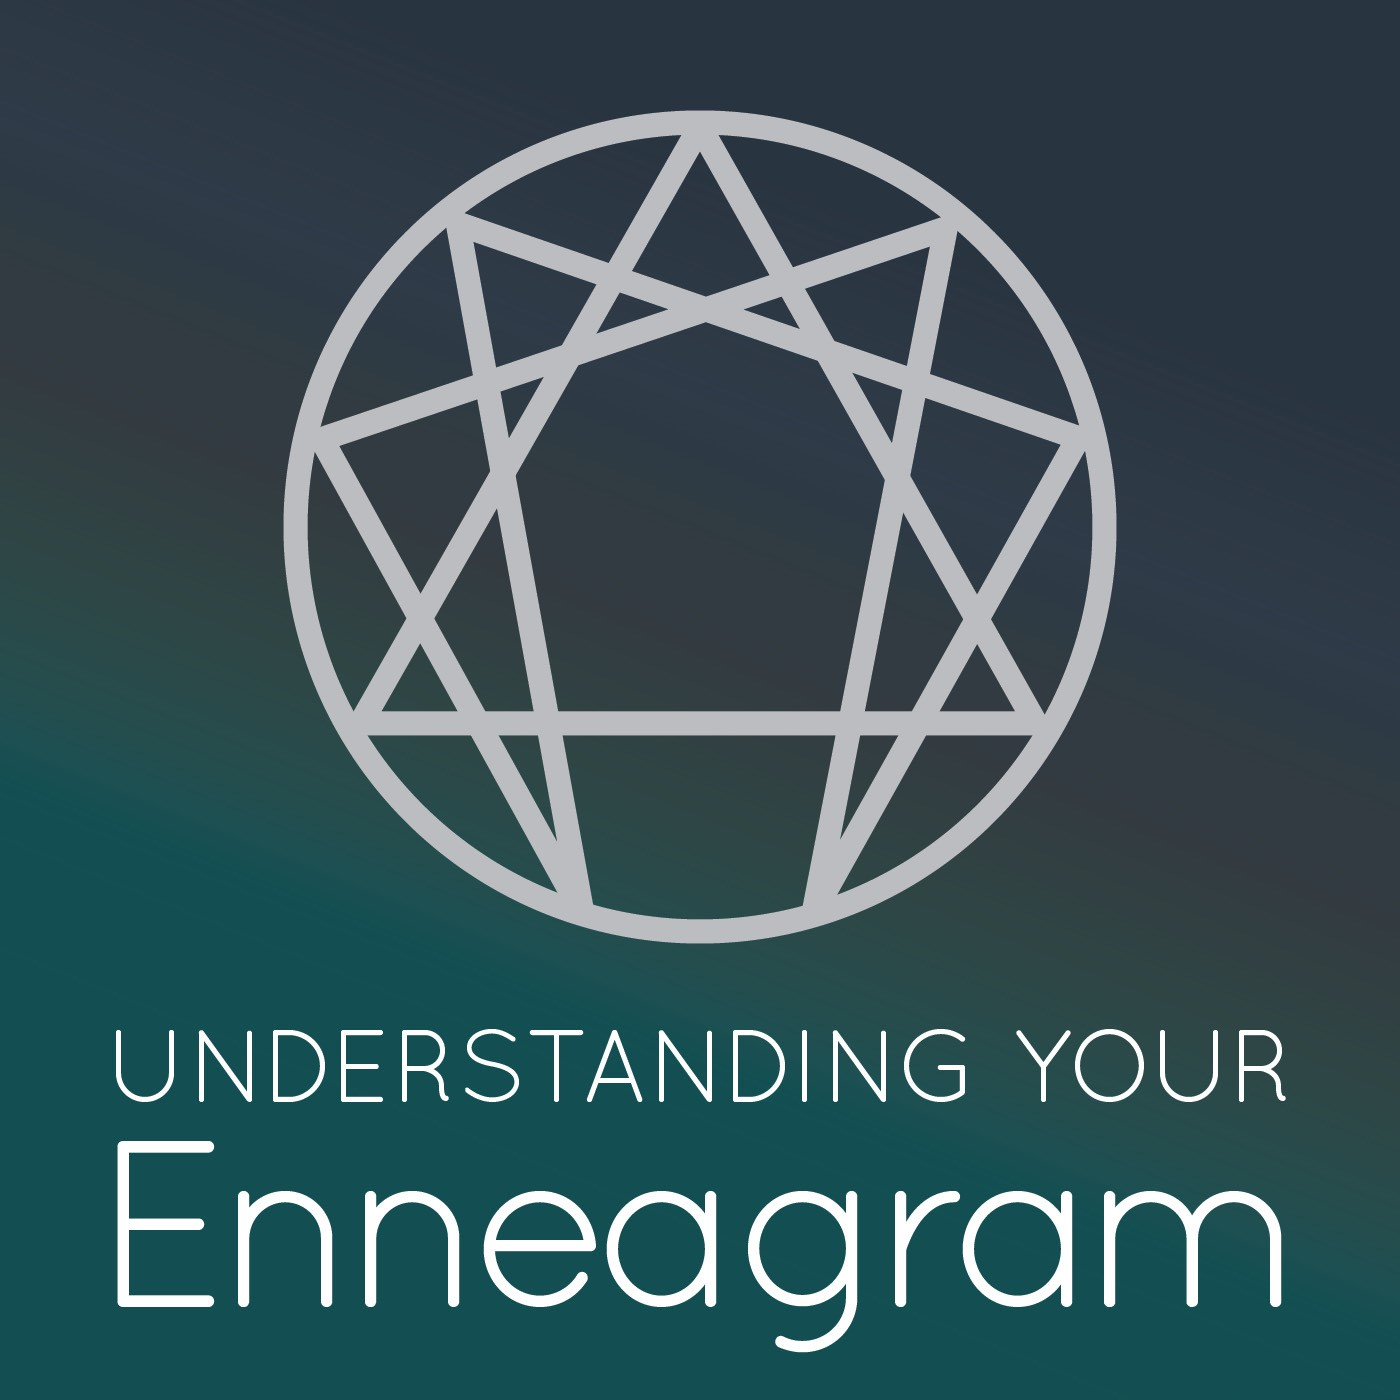 Join our Enneagram learning community